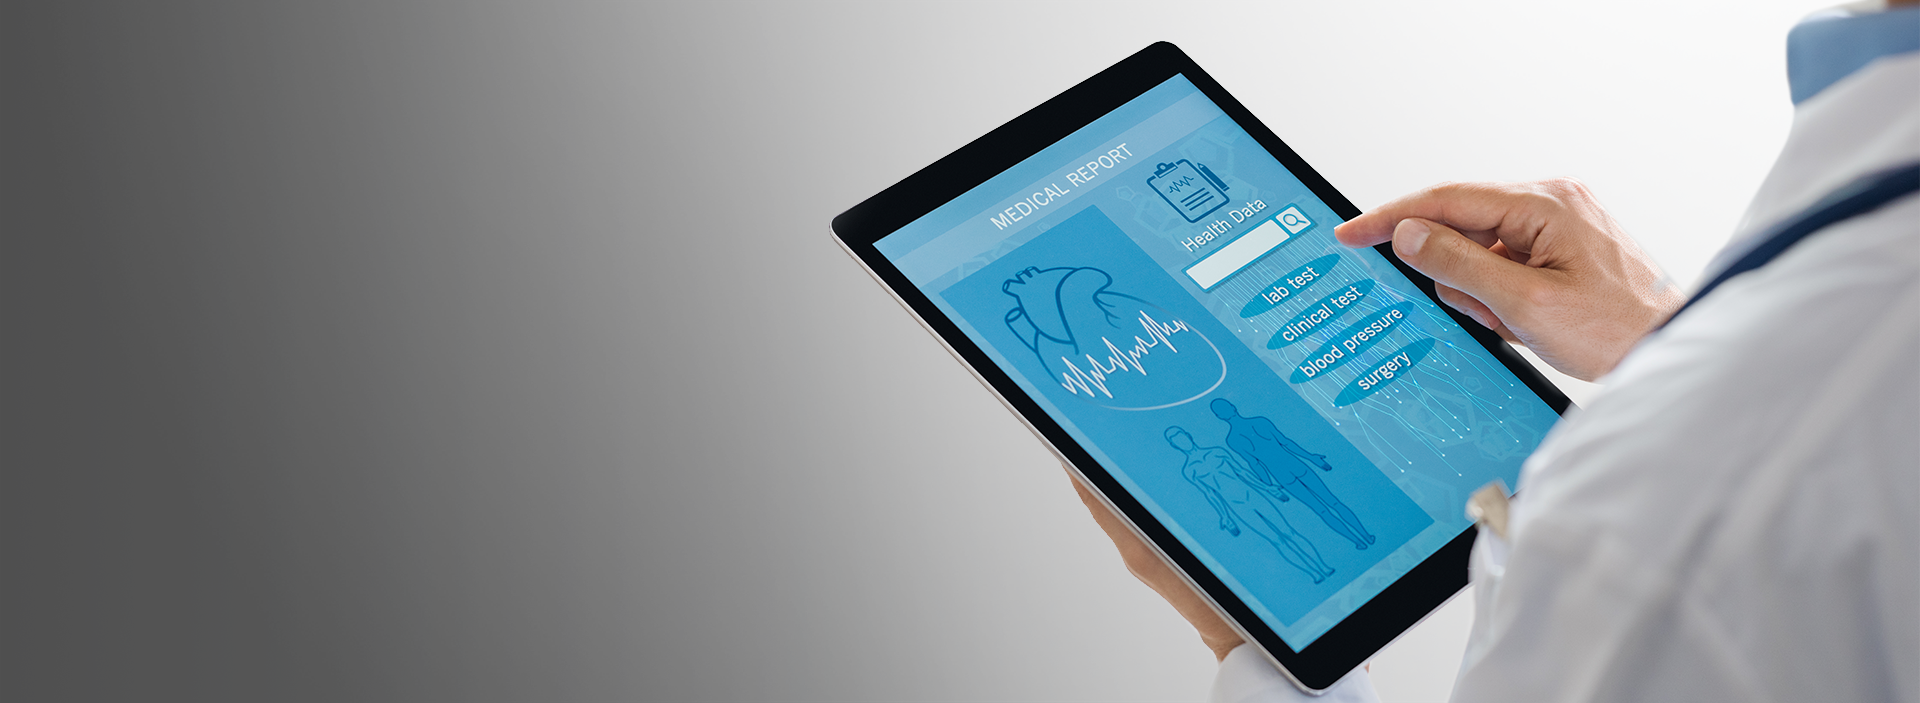 7 best practices in healthcare technology implementation